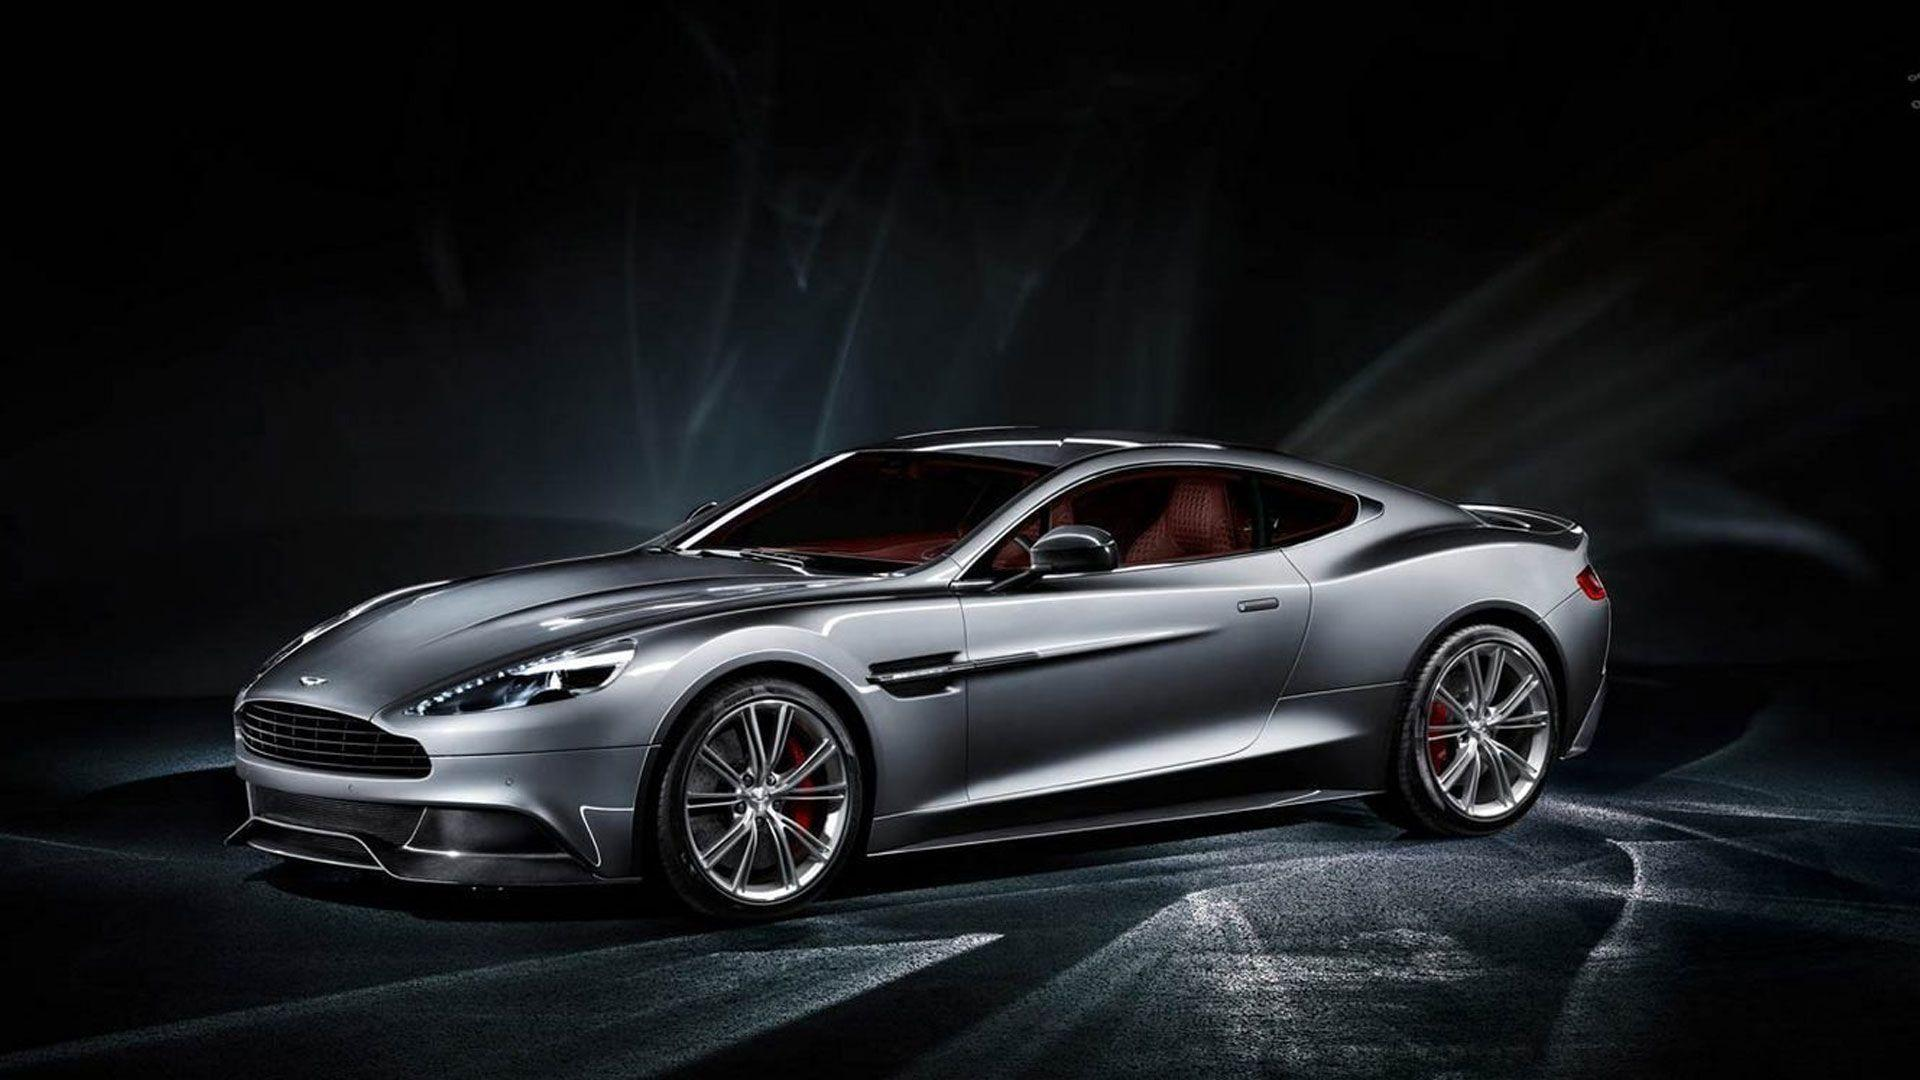 aston martin vanquish 2016 wallpapers wallpaper cave. Black Bedroom Furniture Sets. Home Design Ideas